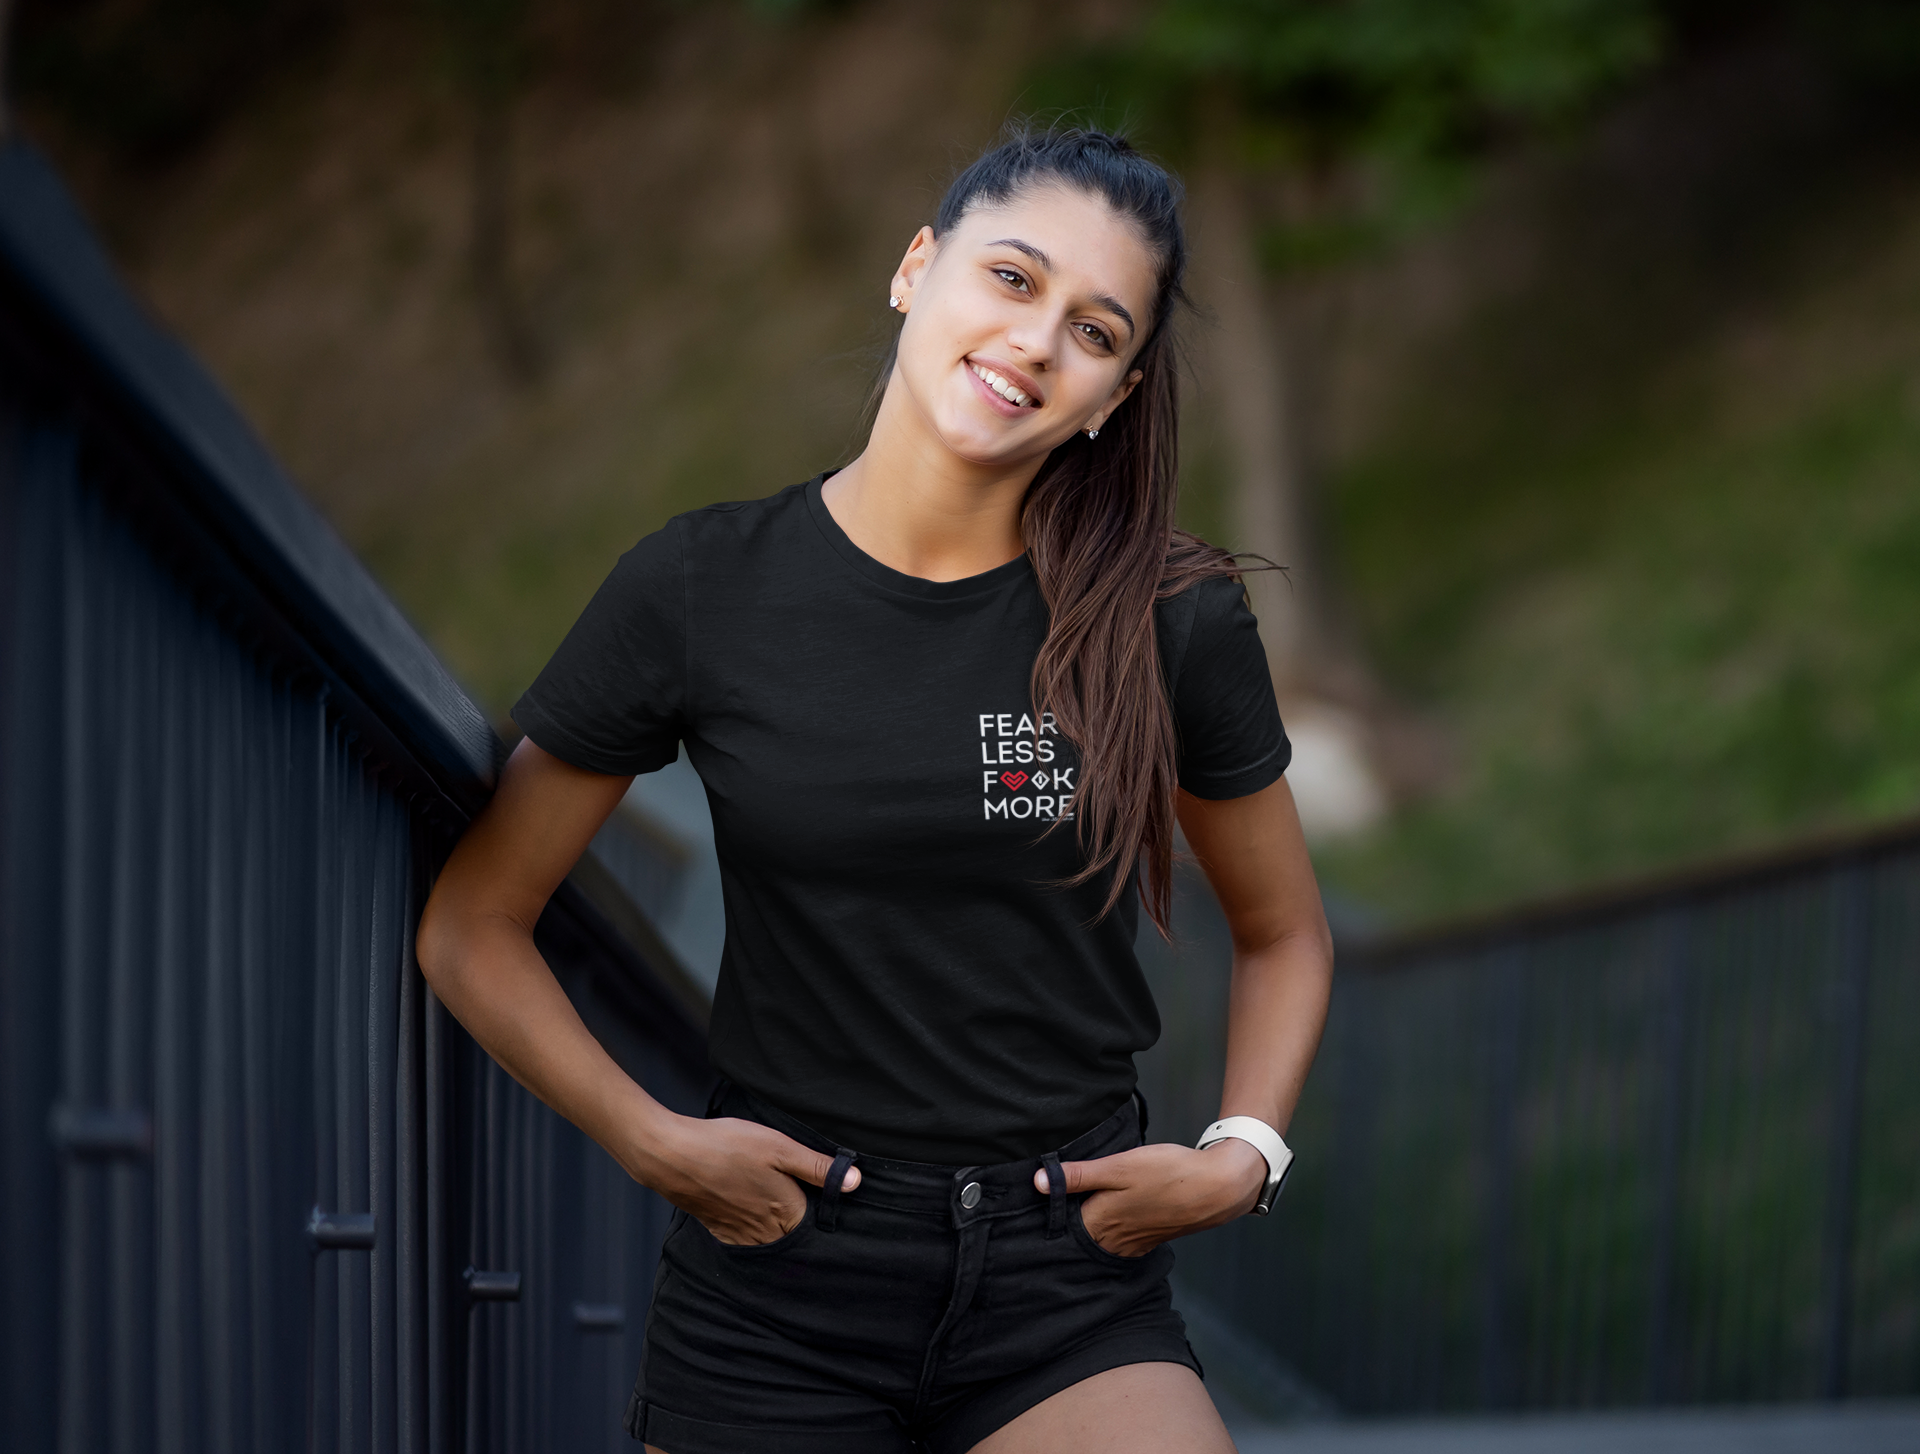 basic-t-shirt-mockup-of-a-happy-long-haired-woman-45022-r-el2